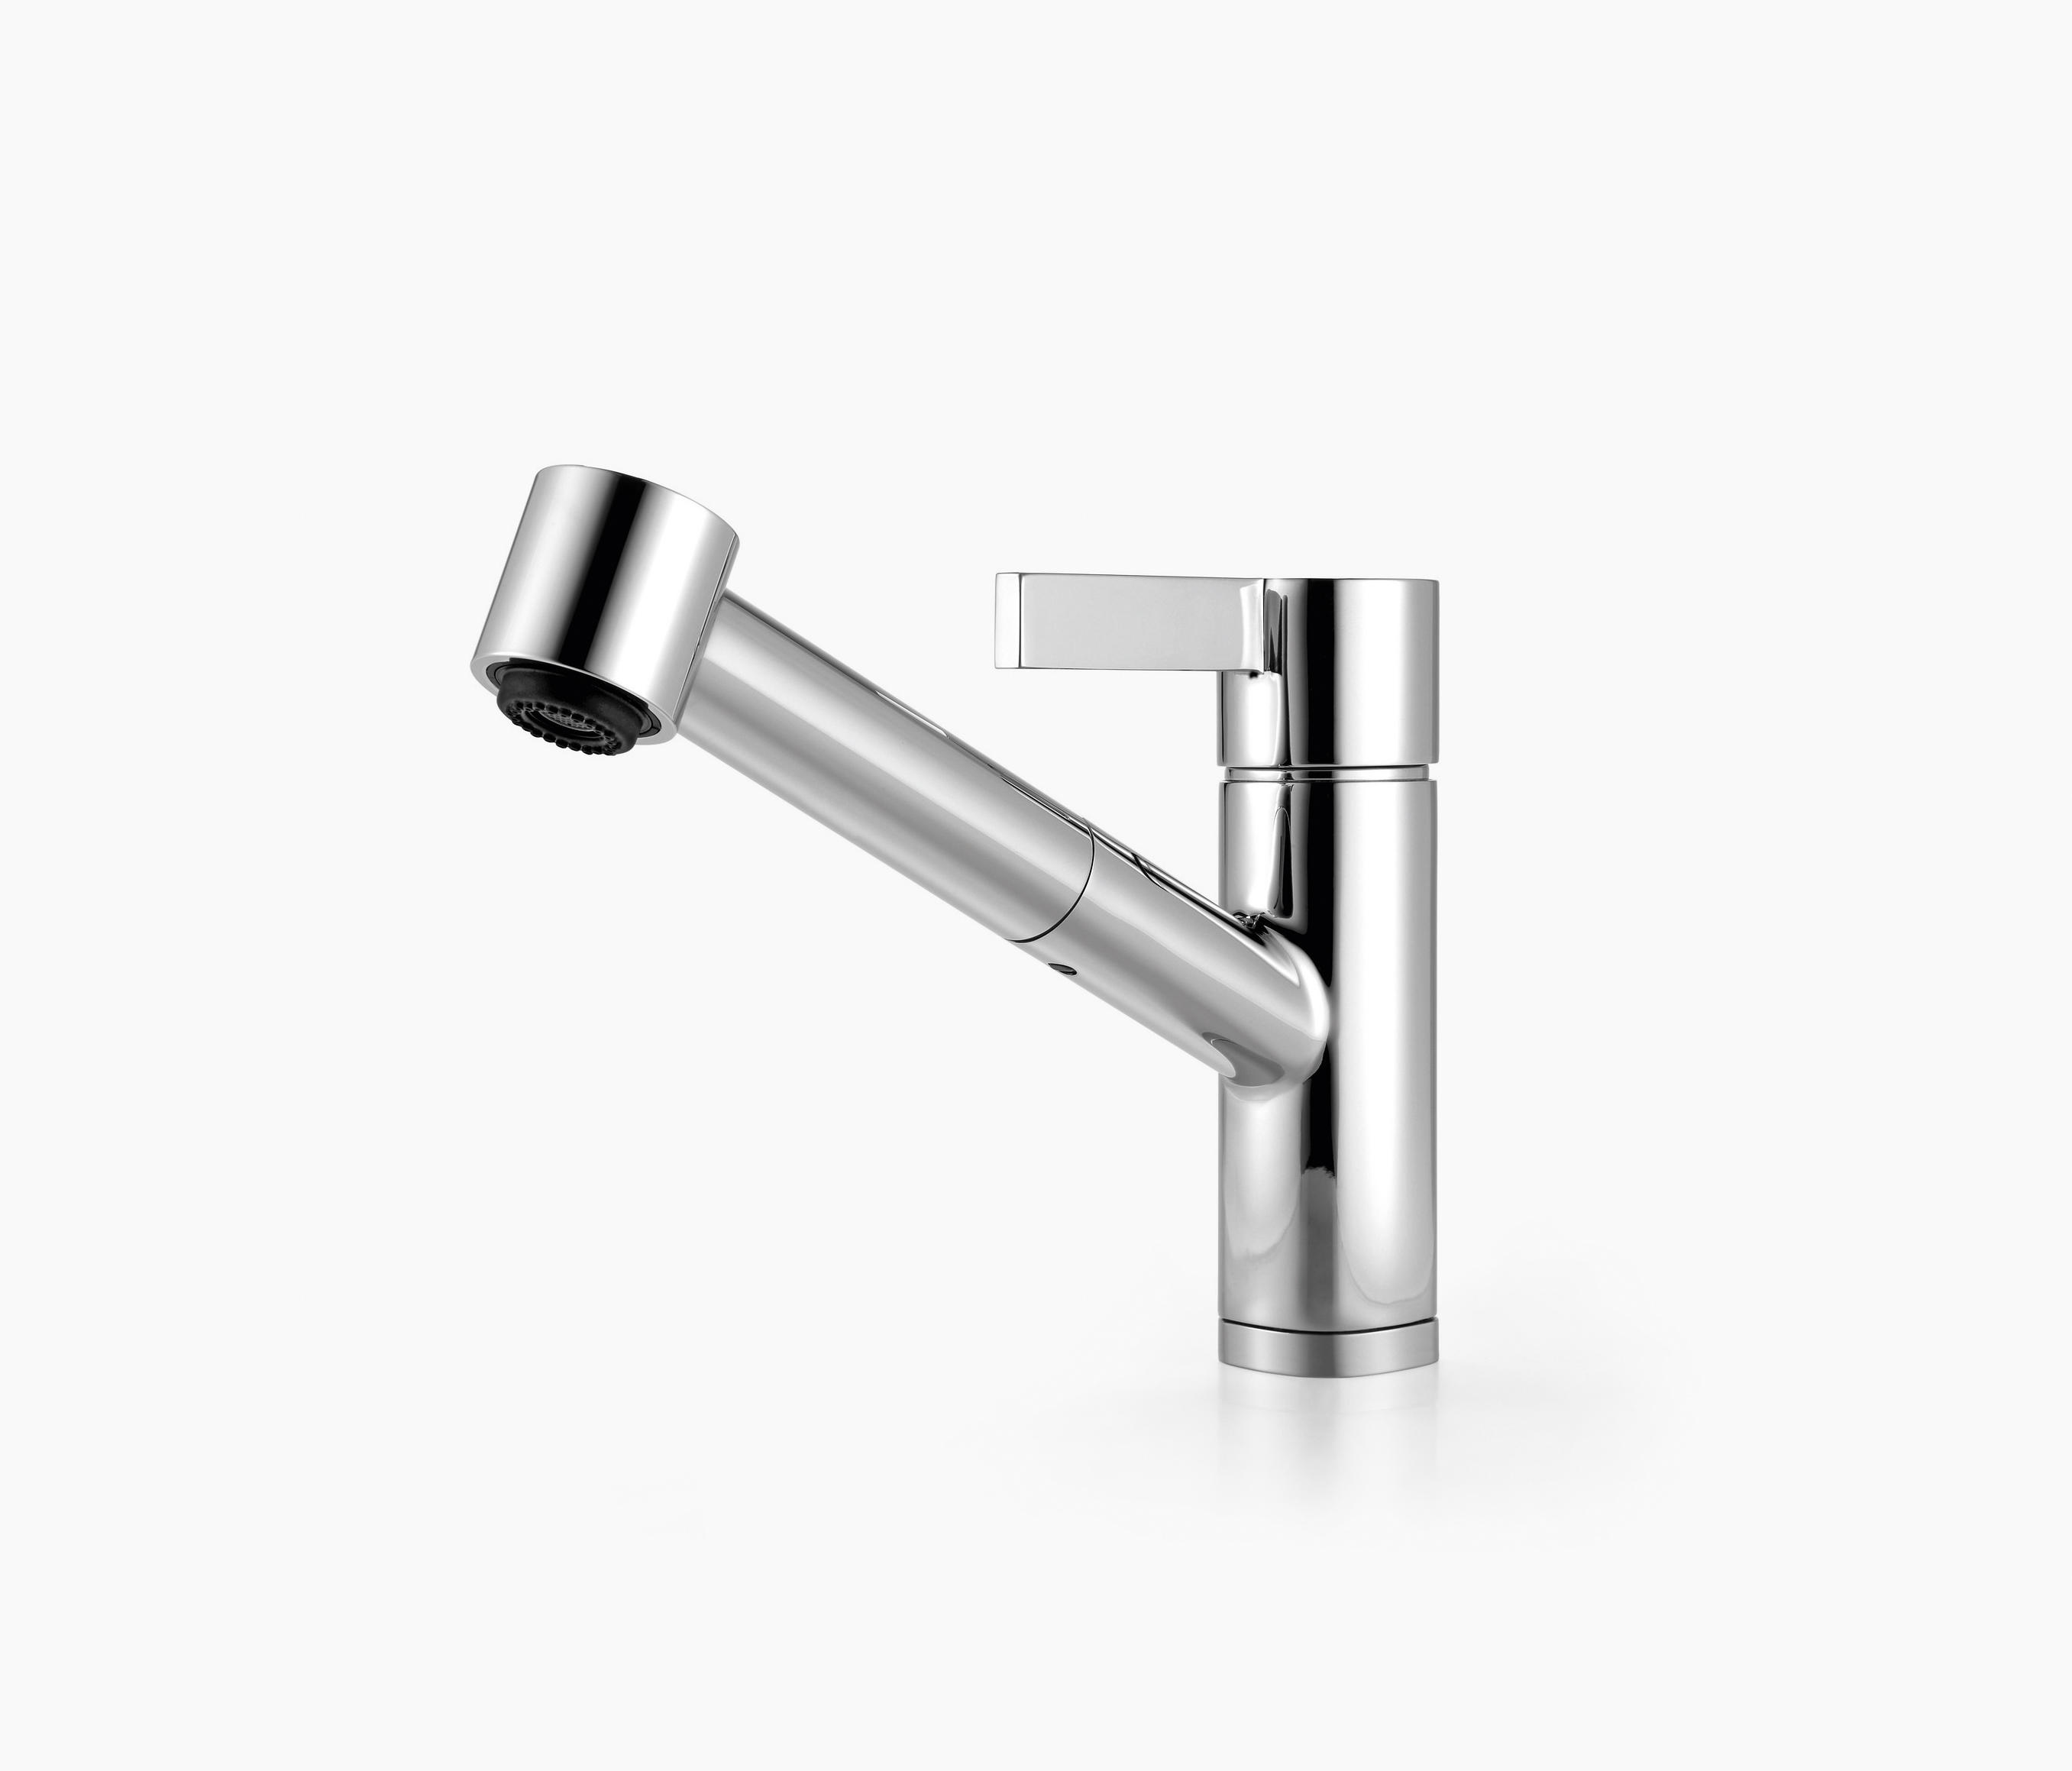 guest ferguson rohl for any at pull faucets down the and dornbracht post space faucet gold finish stainless to bath product experts that rose instant copper hi gallery lighting selected classic blog bring kitchen glamour products